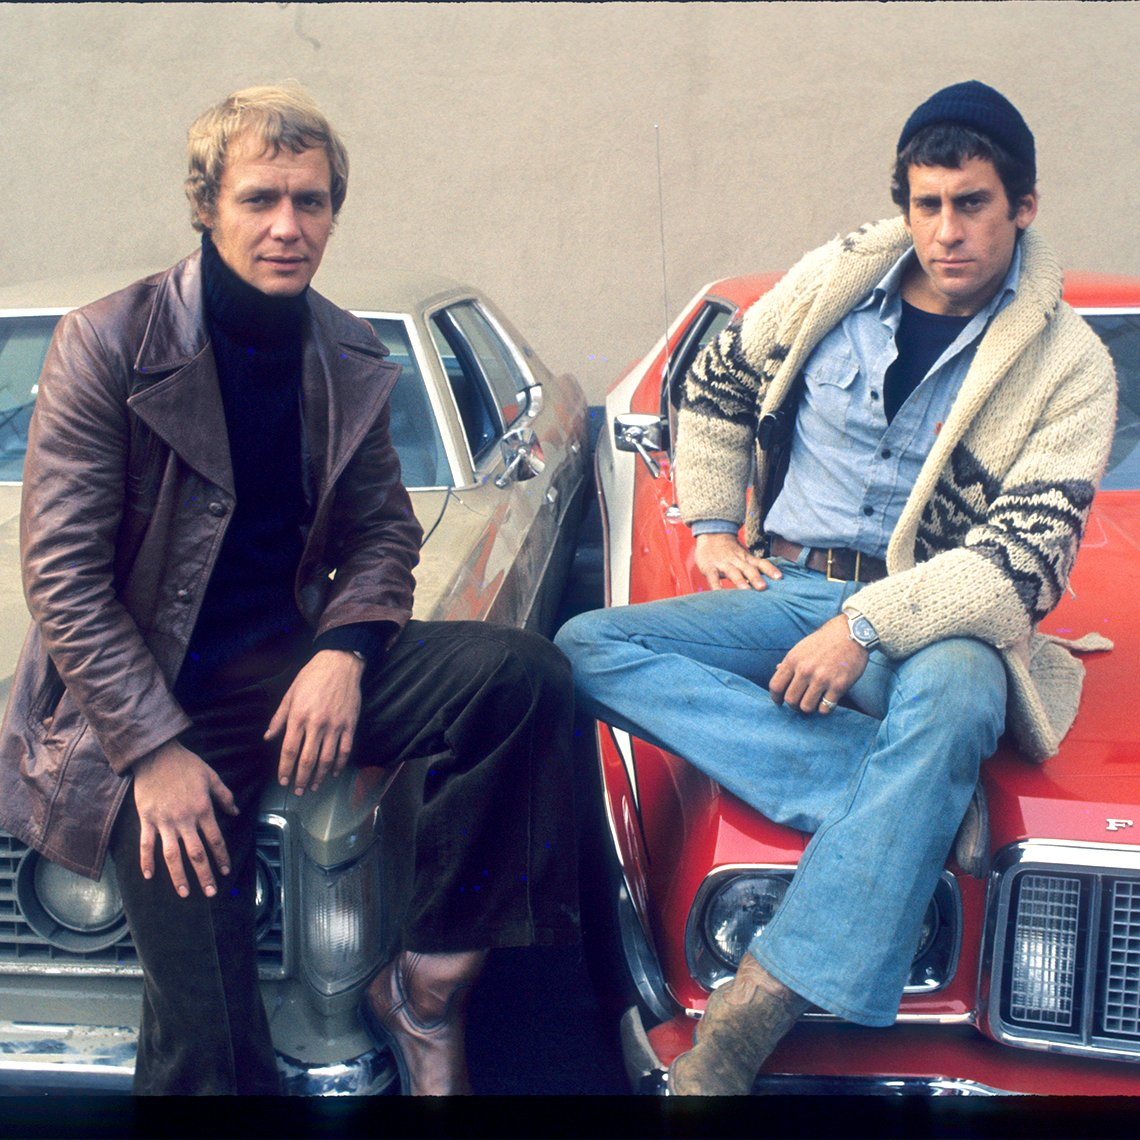 David Soul and Paul Michael Glaser pose on the hood of cars in 'Starsky and Hutch'